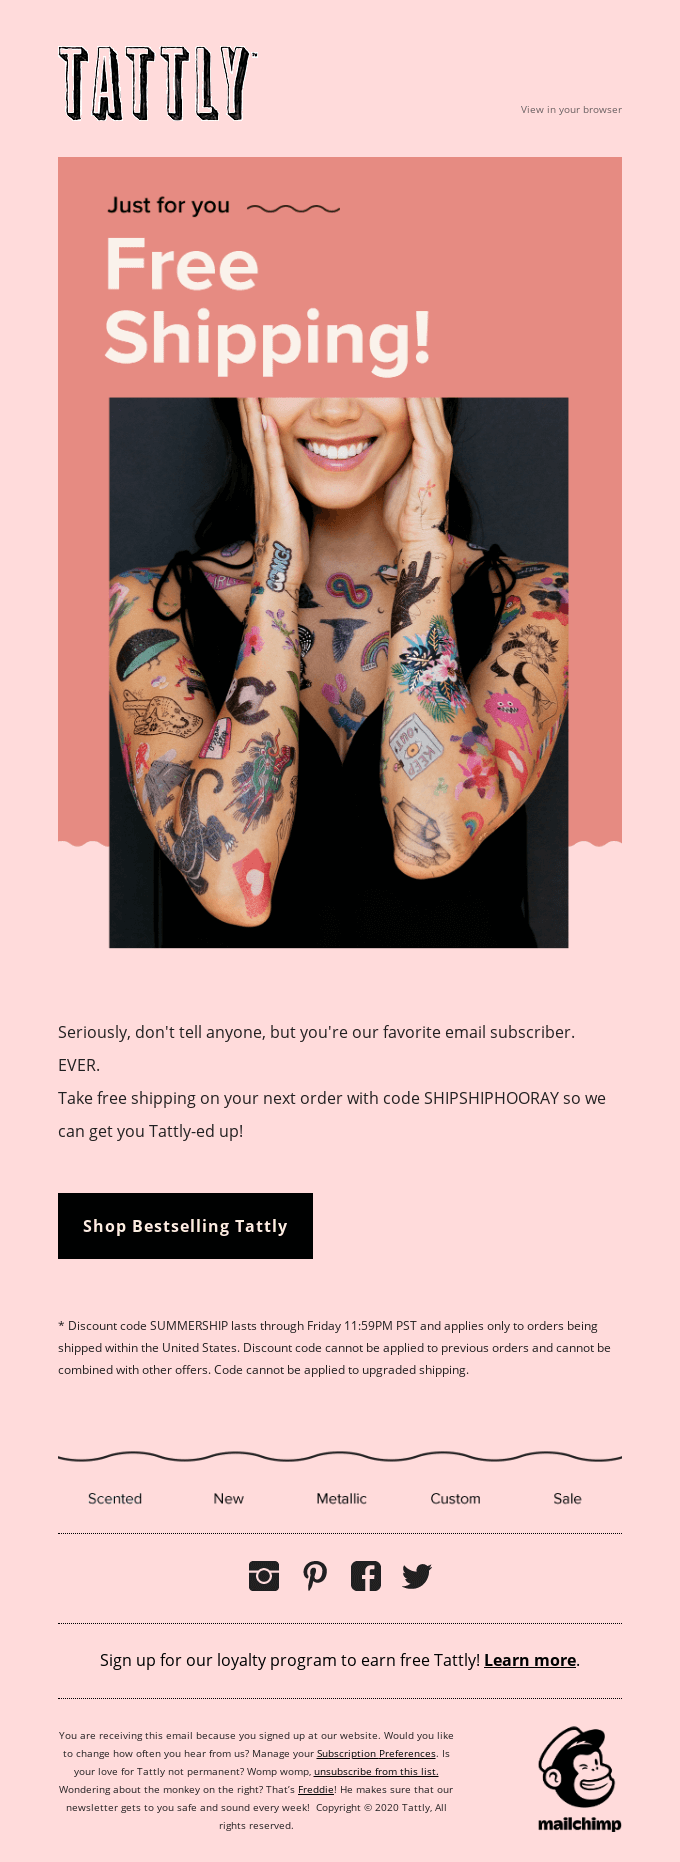 Free Shipping Just for You!